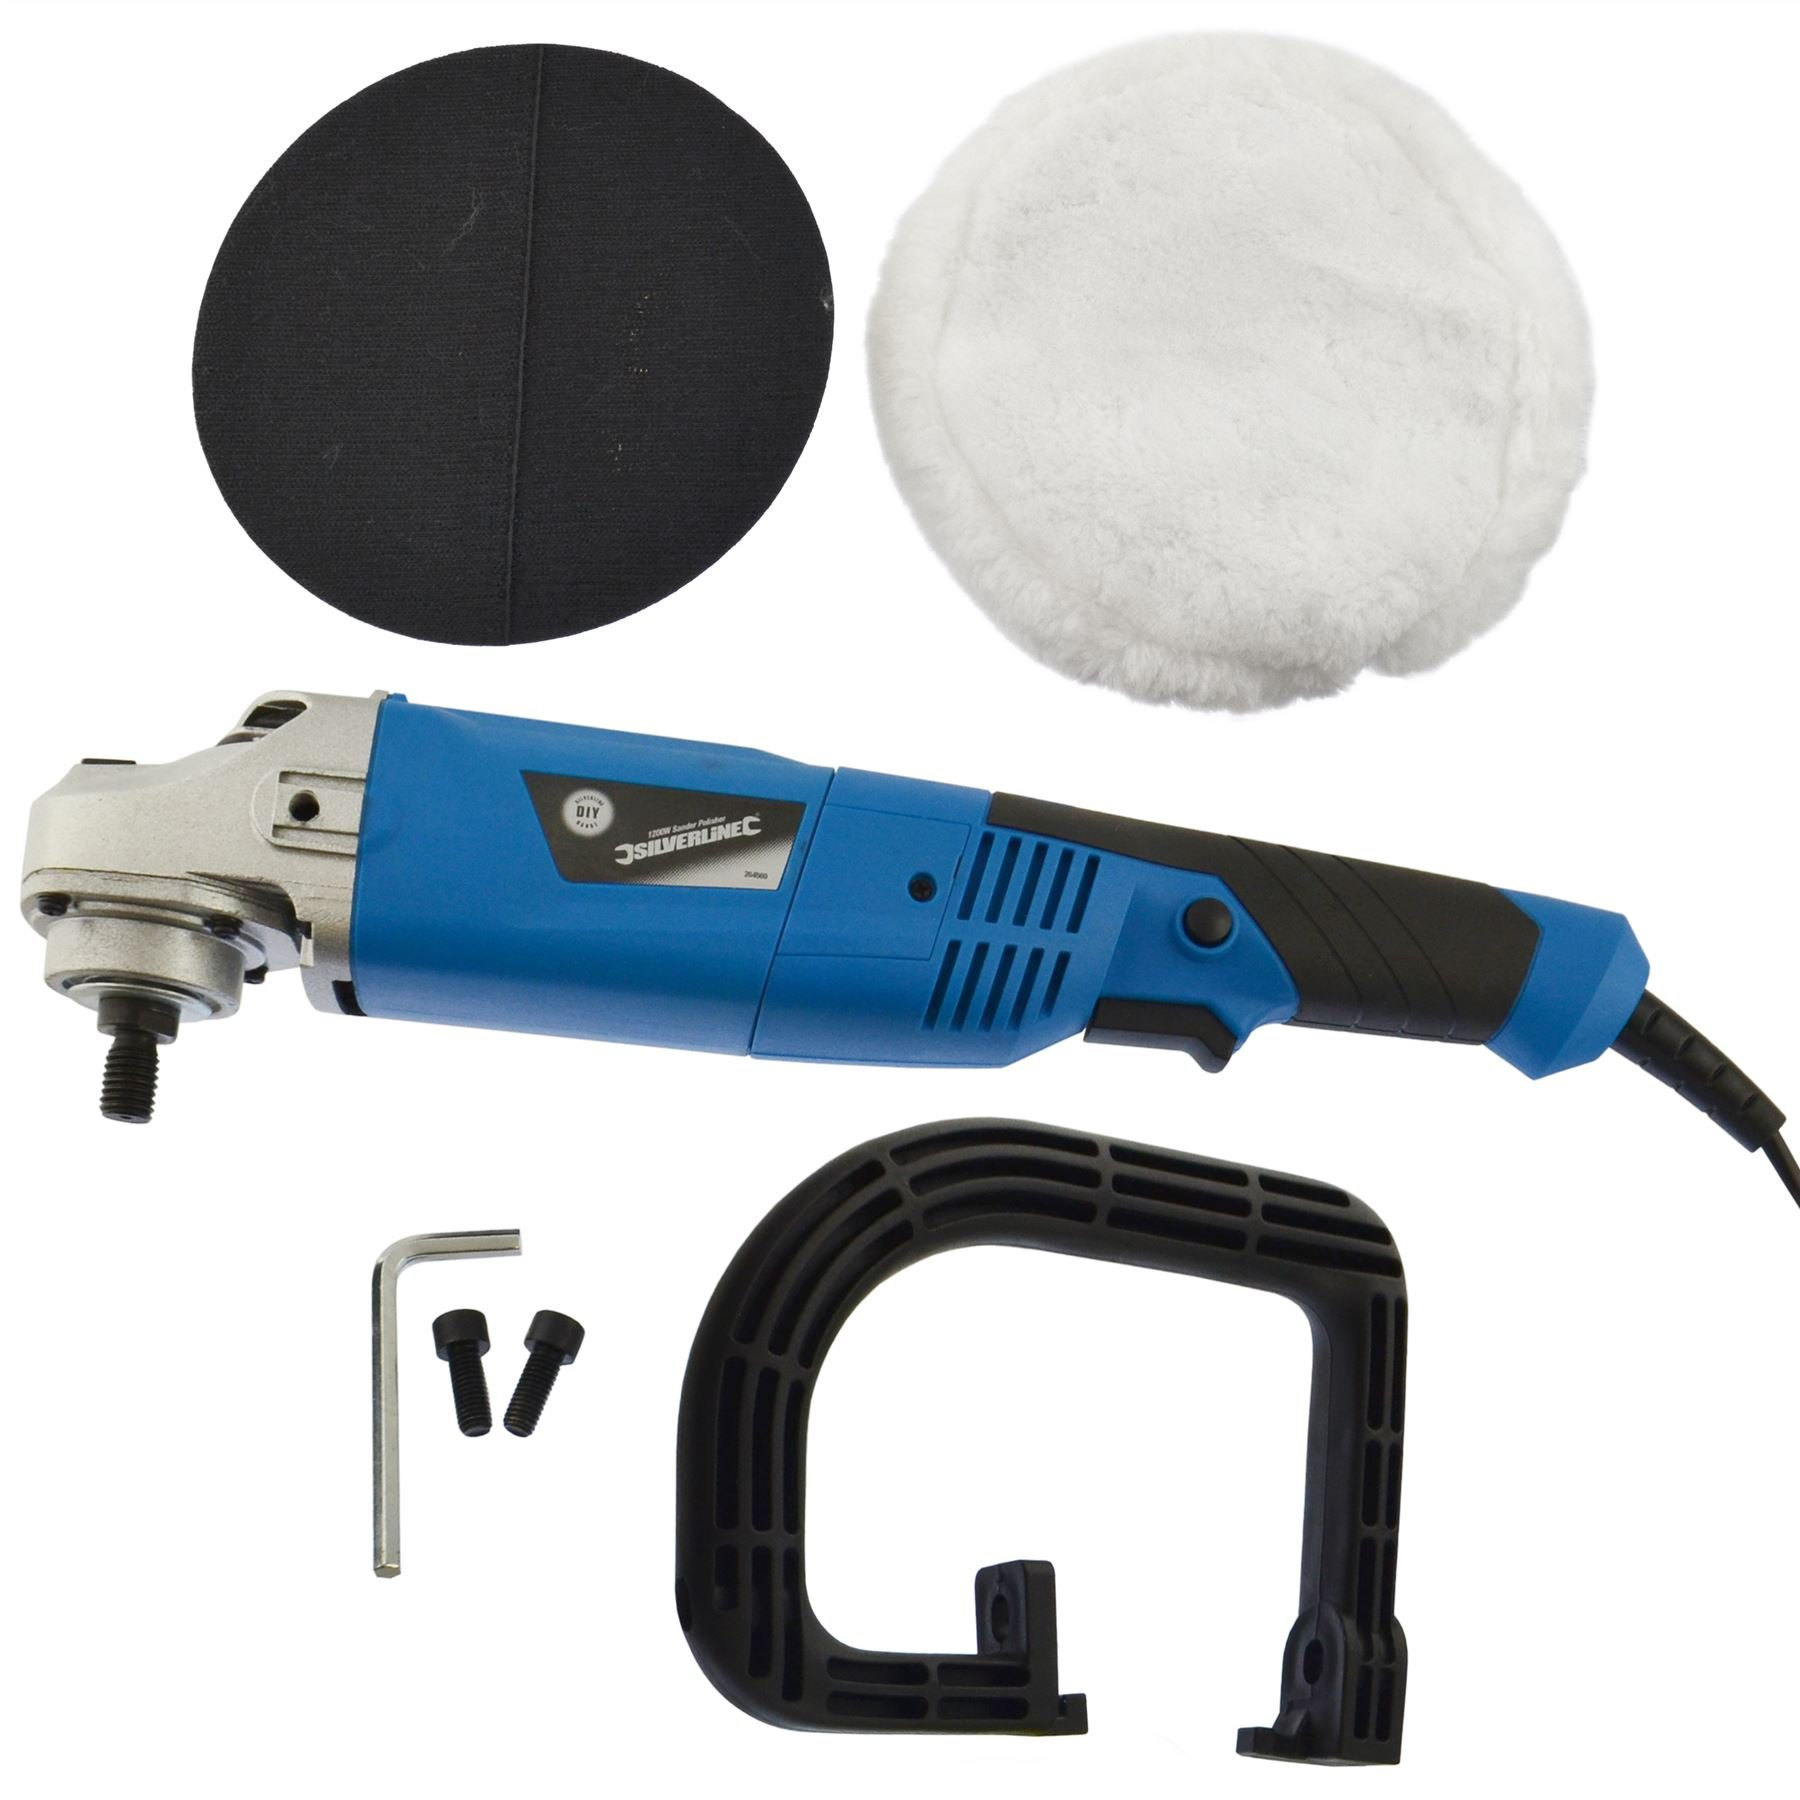 AB Tools-Silverline 180mm Machine Polisher 1200W Electric Variable Speed Rotary Car Buffer SIL126 by AB Tools-Silverline (Image #2)